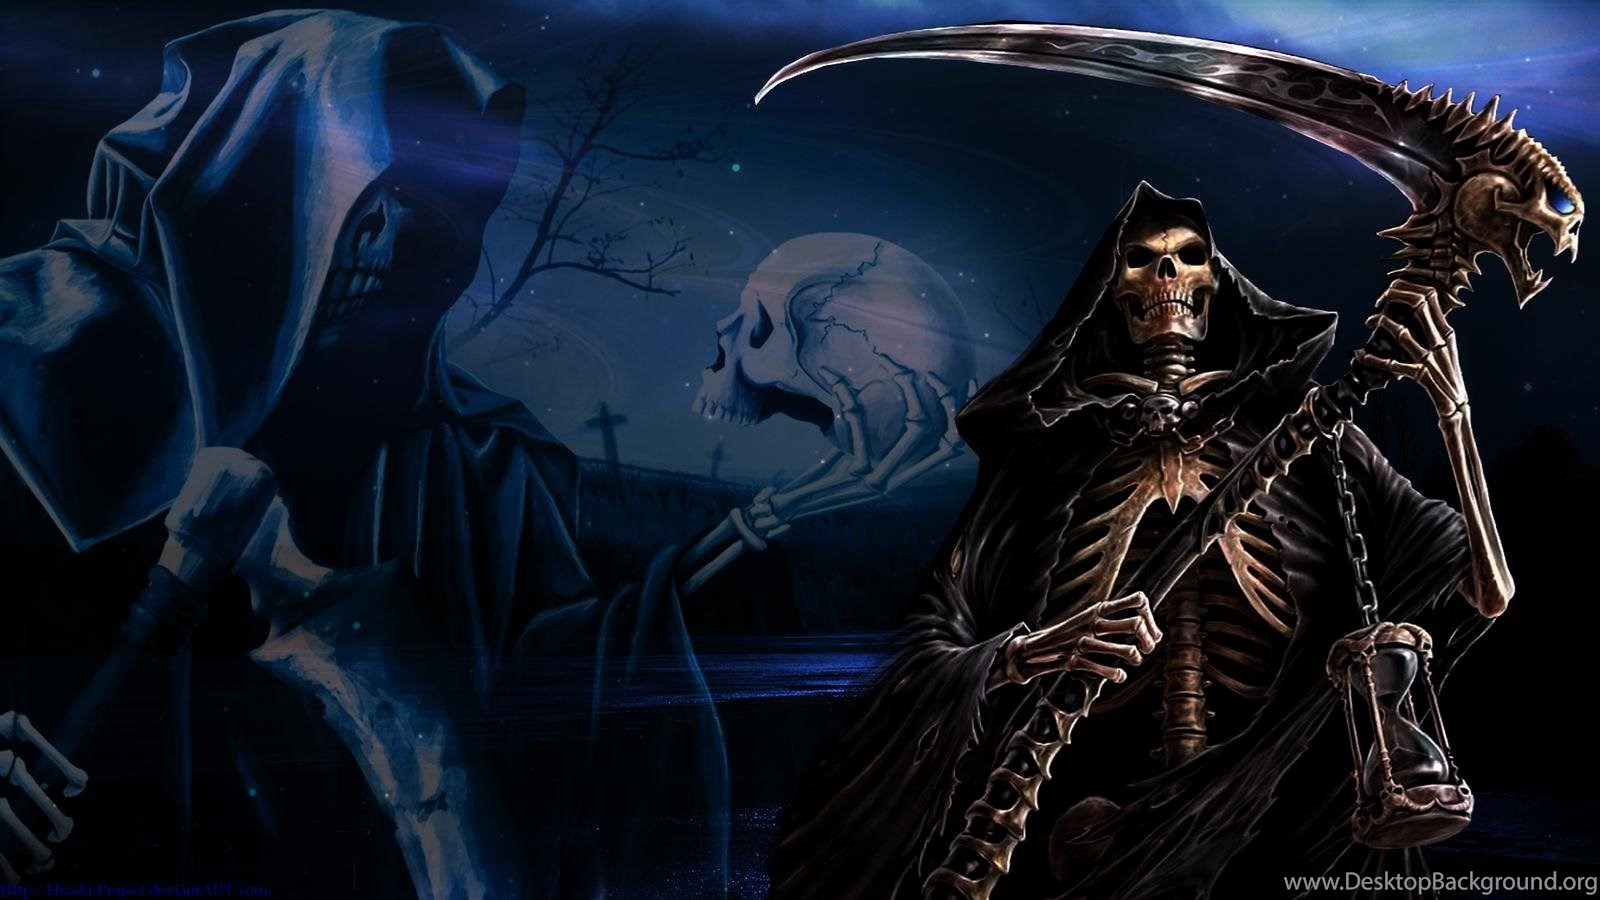 Scary Grim Reaper Wallpapers Wallpapers Wallpapers Hd Backgrounds